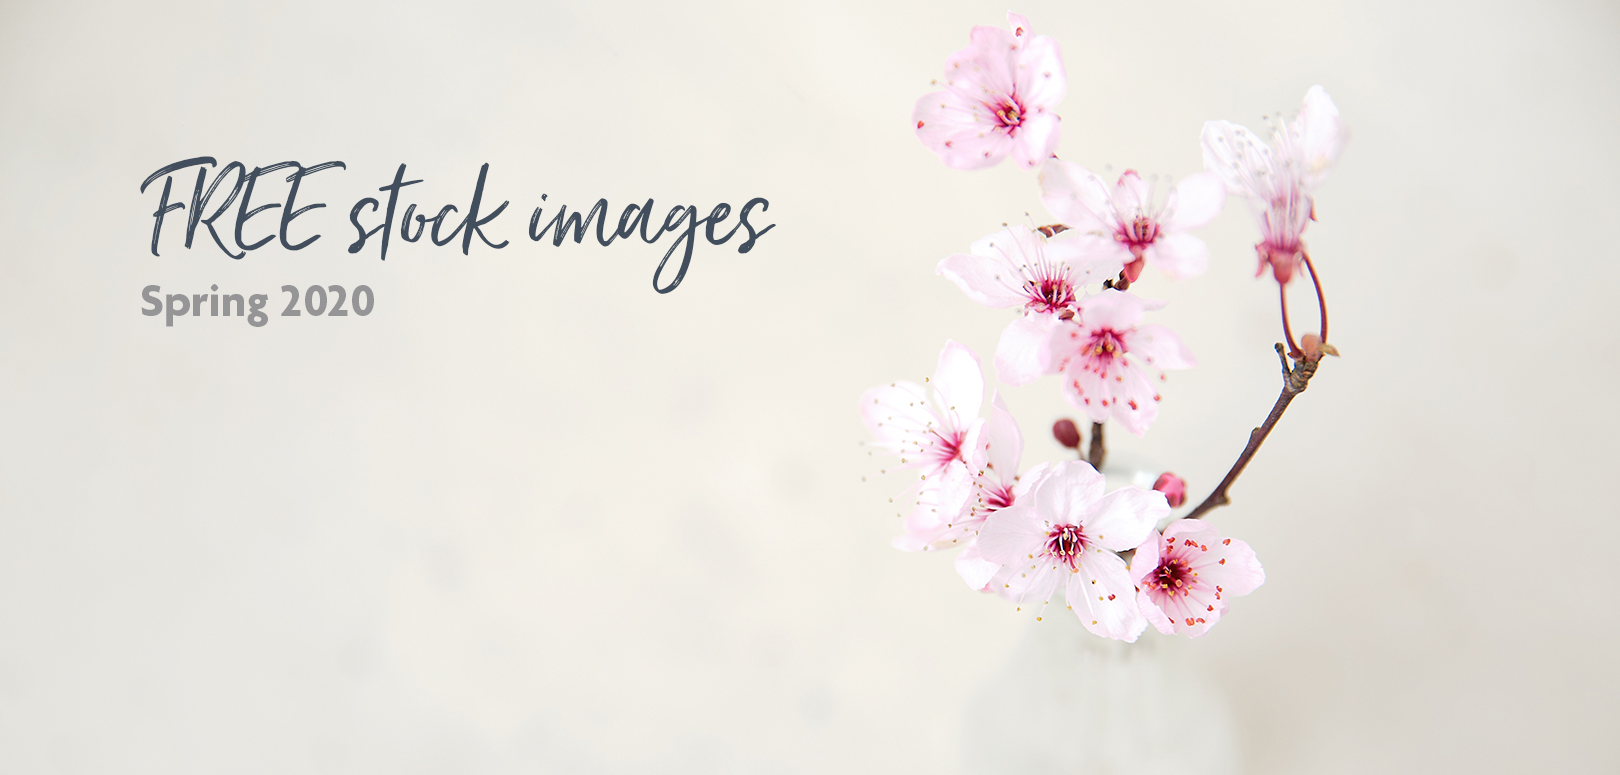 FREE Spring stock images